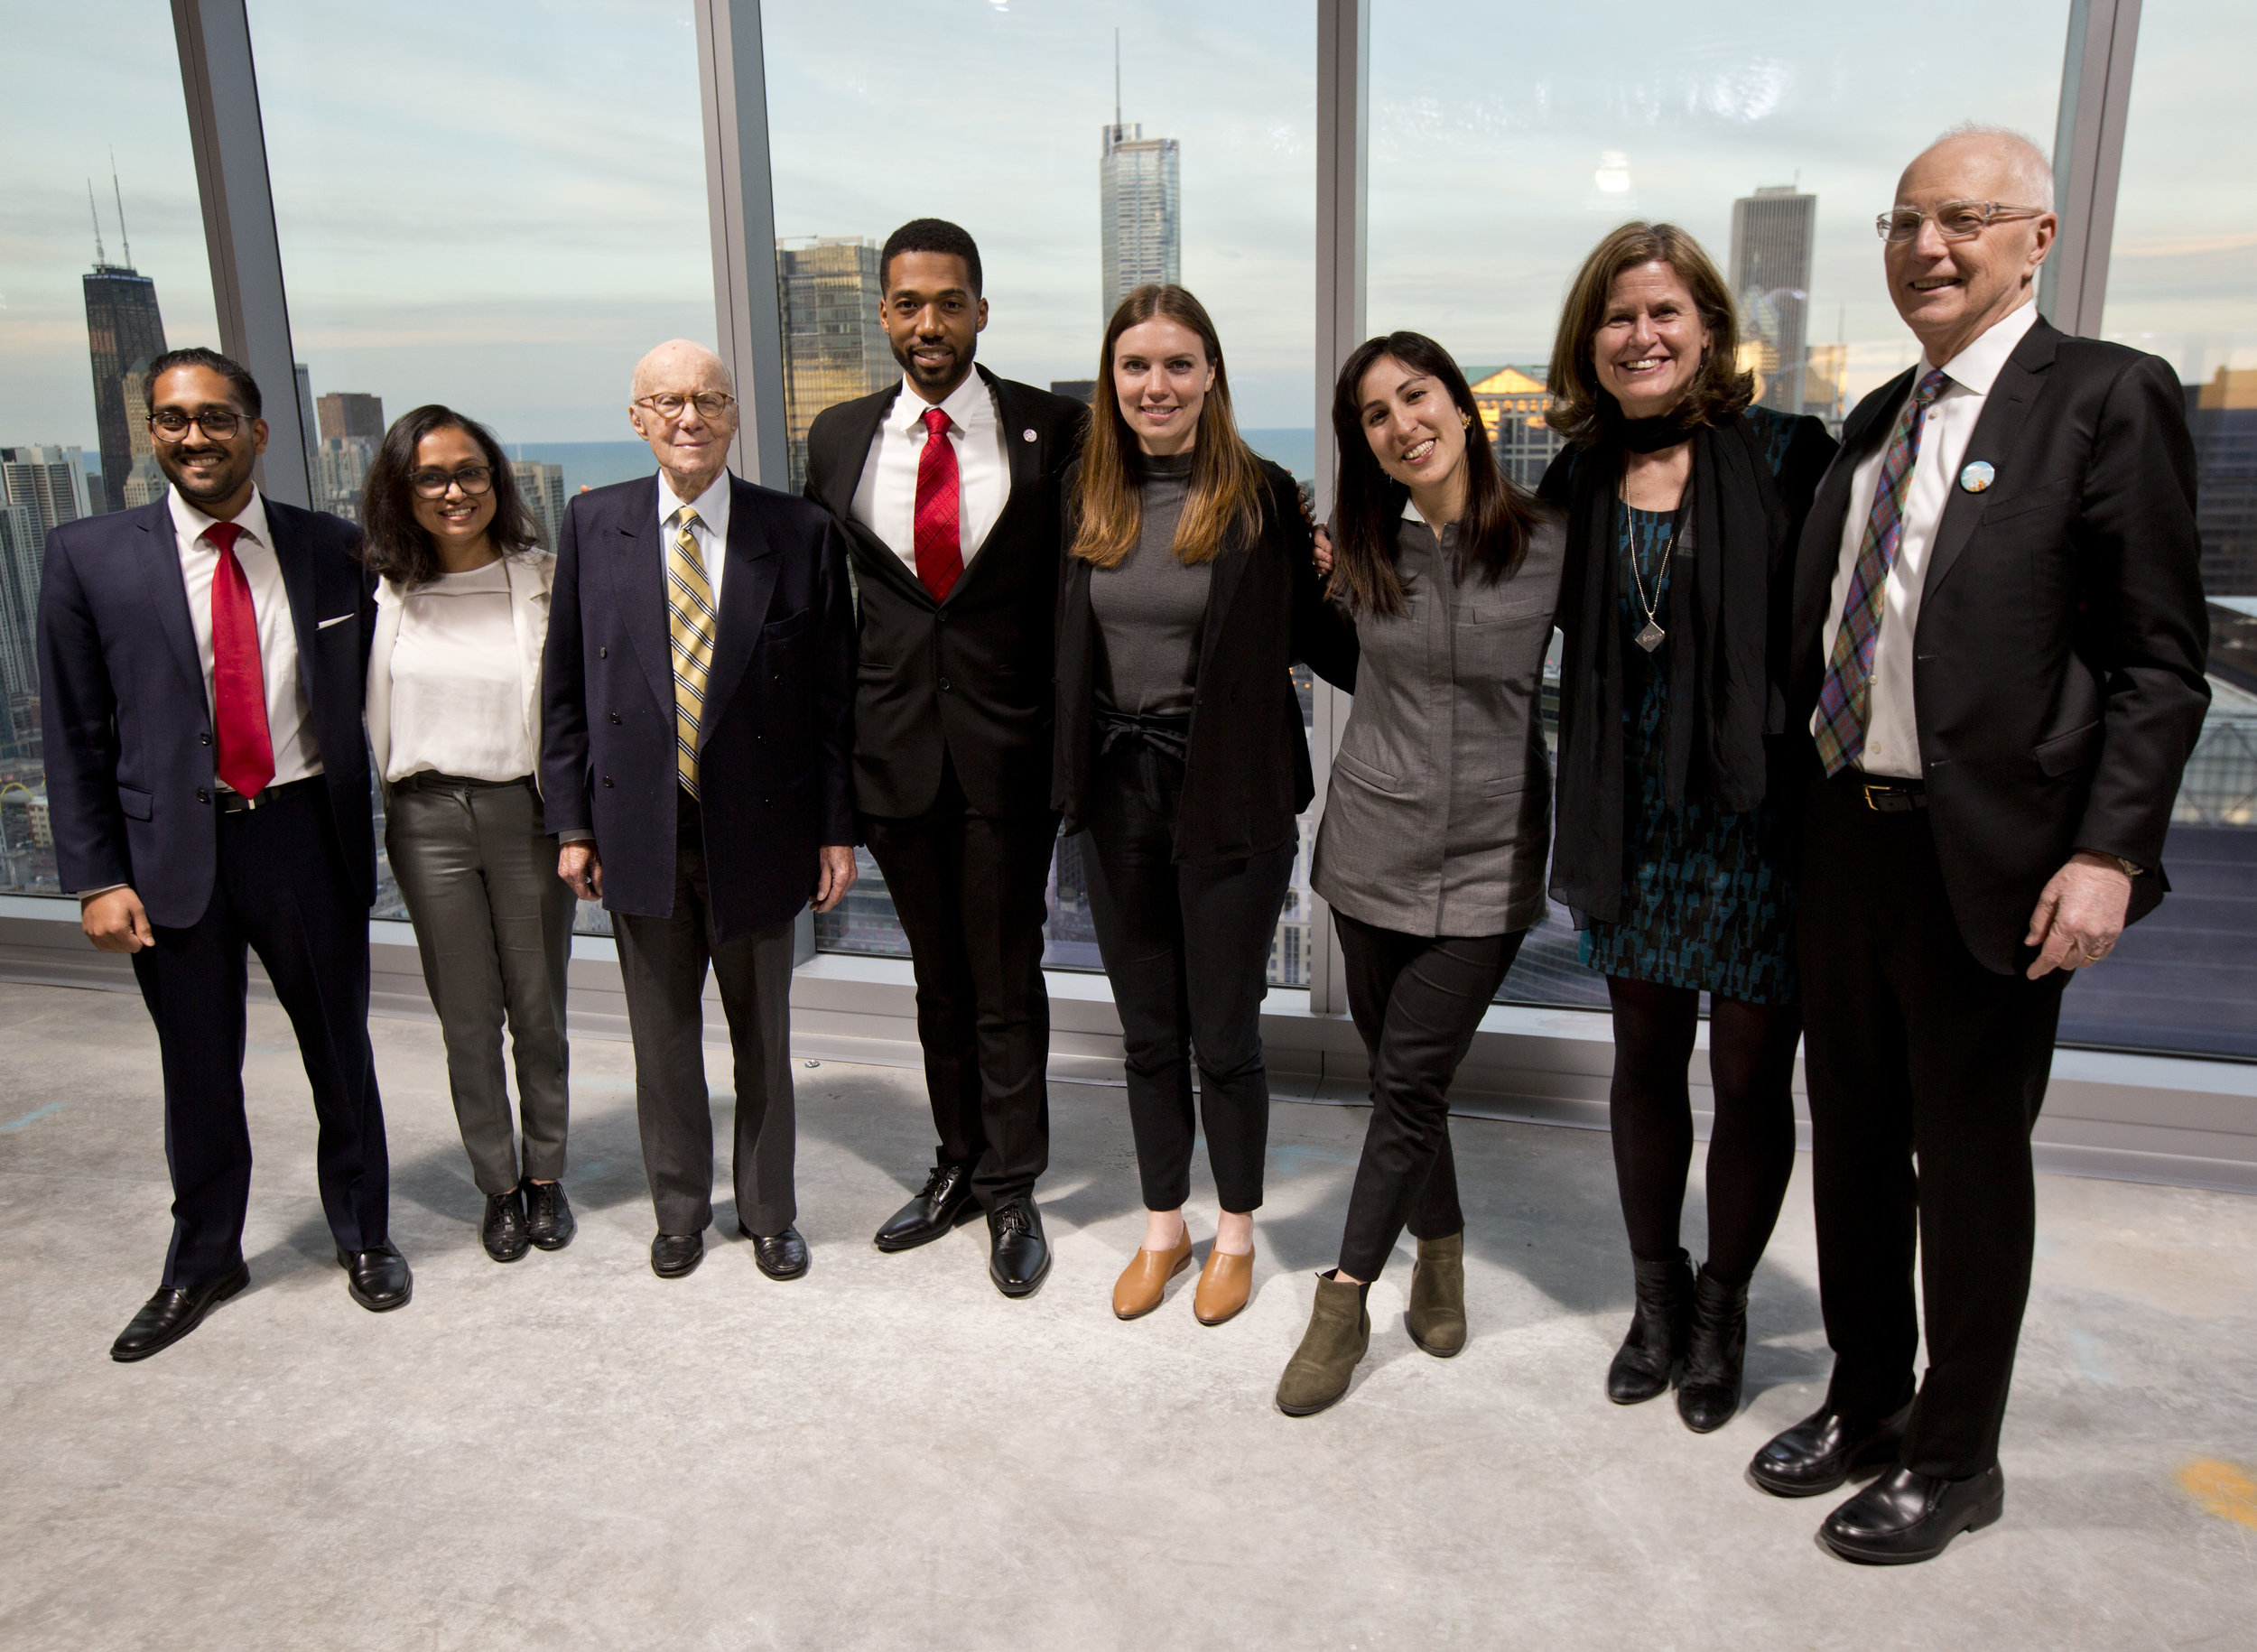 Pictured from left to right: Varun Patel, Shruti Srikar, Gerald Hines (competition sponsor and funder), Ernest Bellamy, Shannon Iacino, Lola Ben-Alon, Theresa Frankiewicz (Jury Chair), Don Carter.  Photo credit: ULI/Nathan Weber